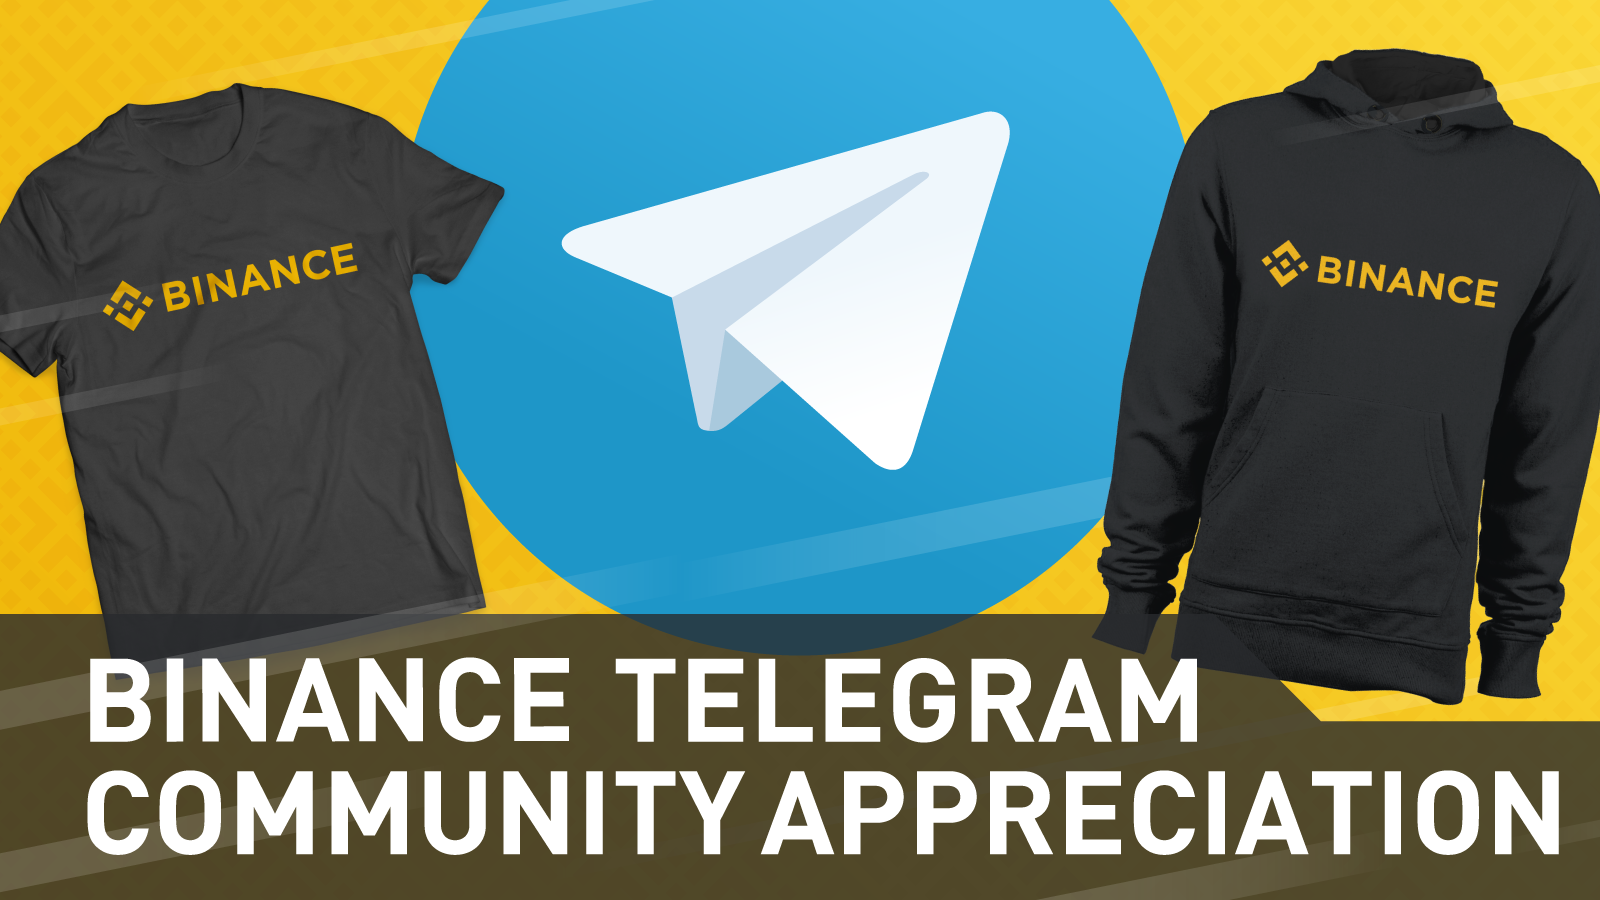 Binance Telegram Community Promo | Binance Blog